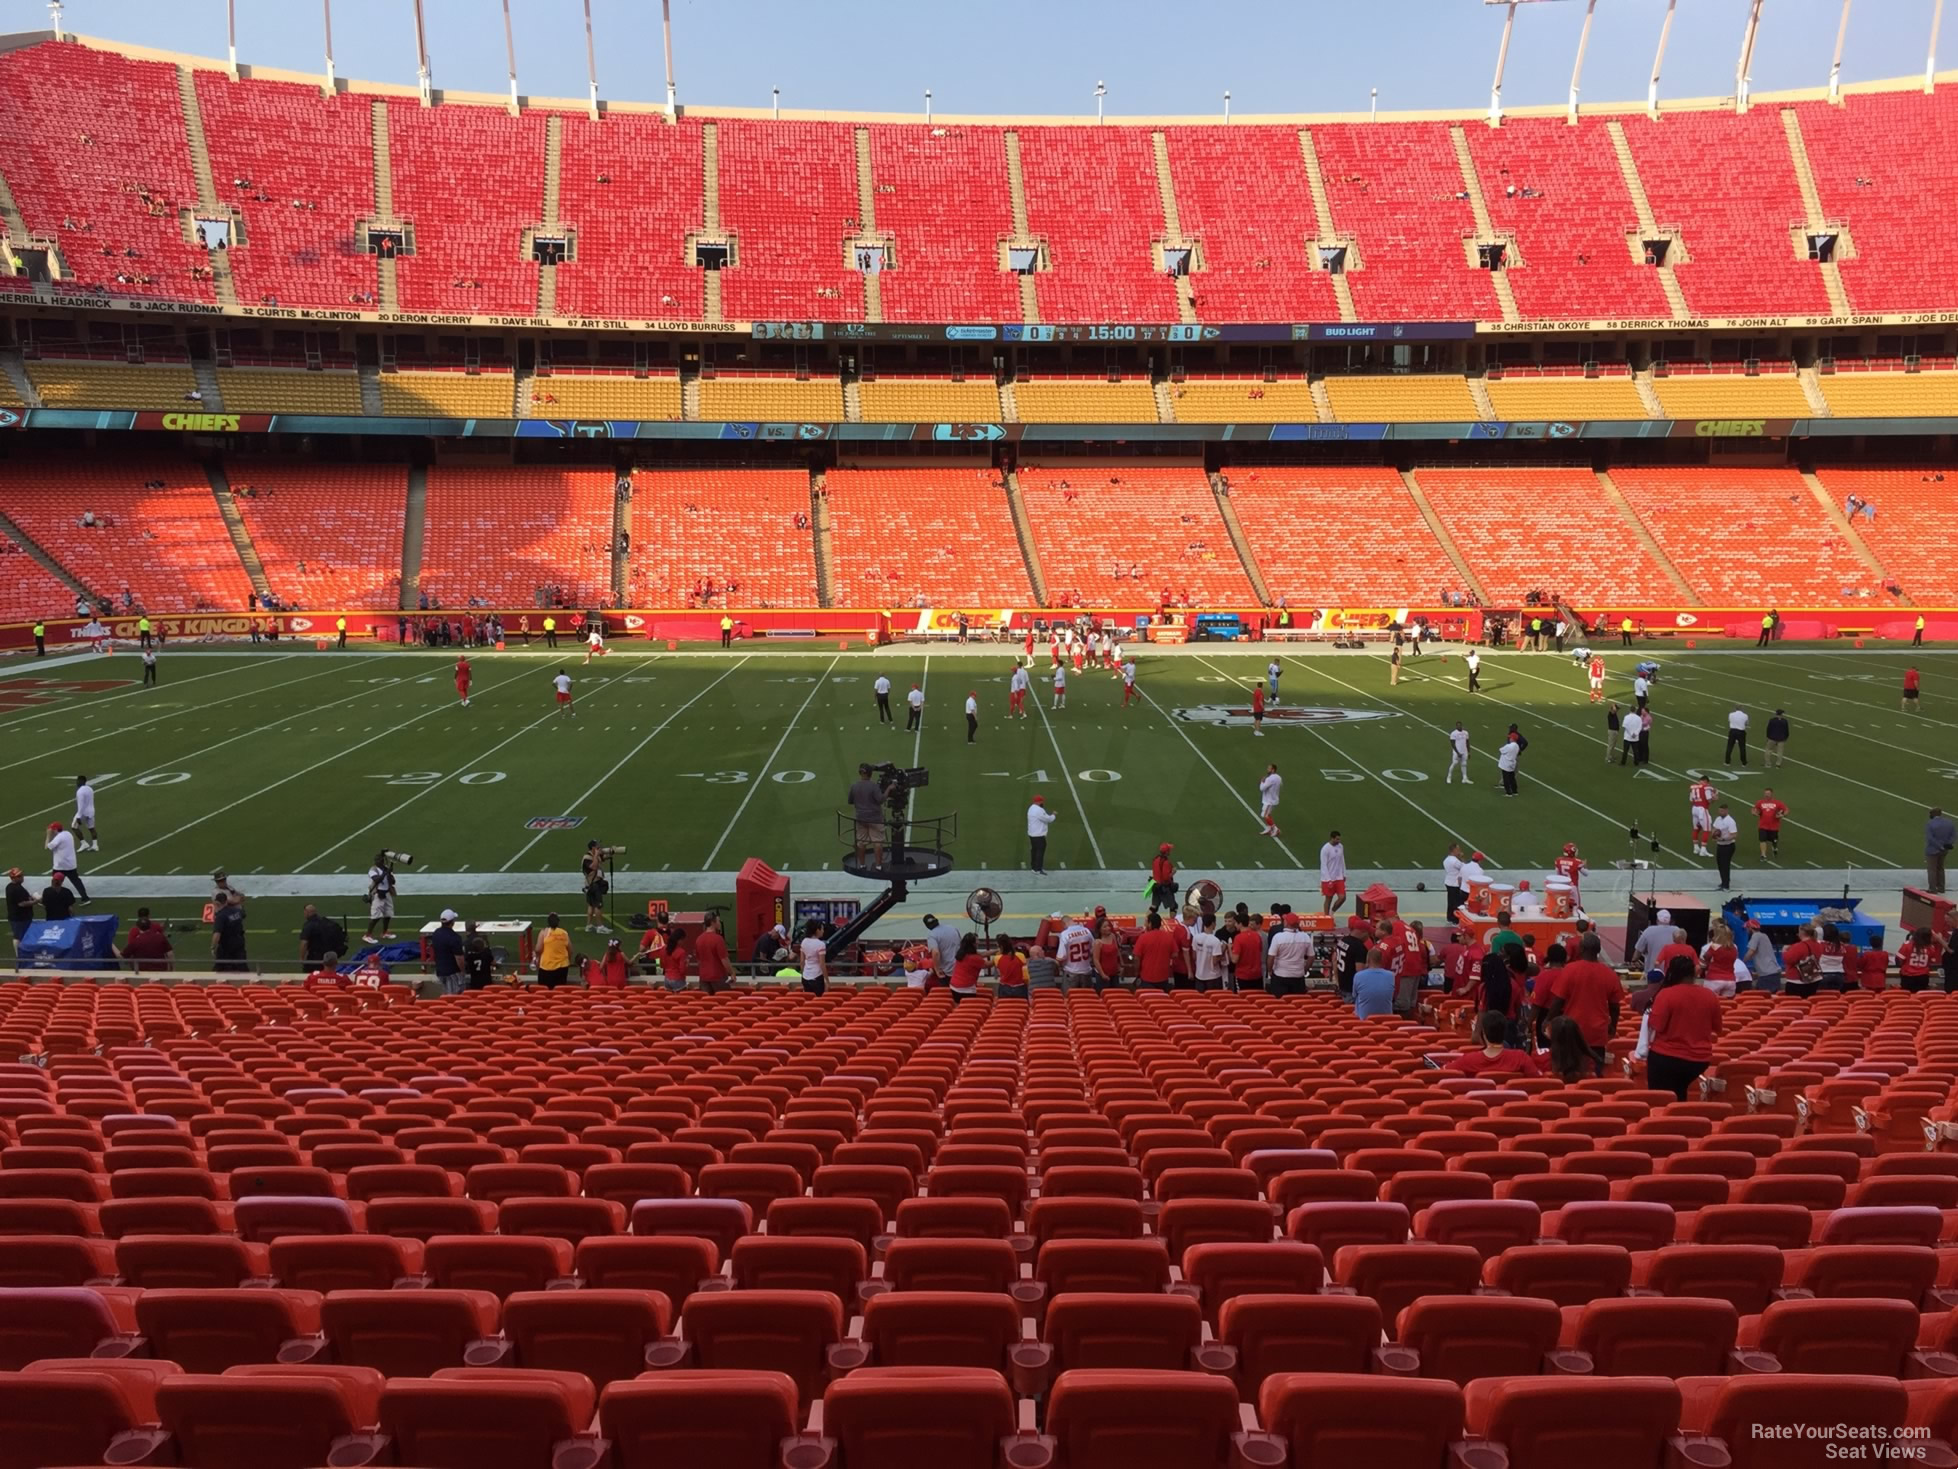 Seat View for Arrowhead Stadium Section 120, Row 30